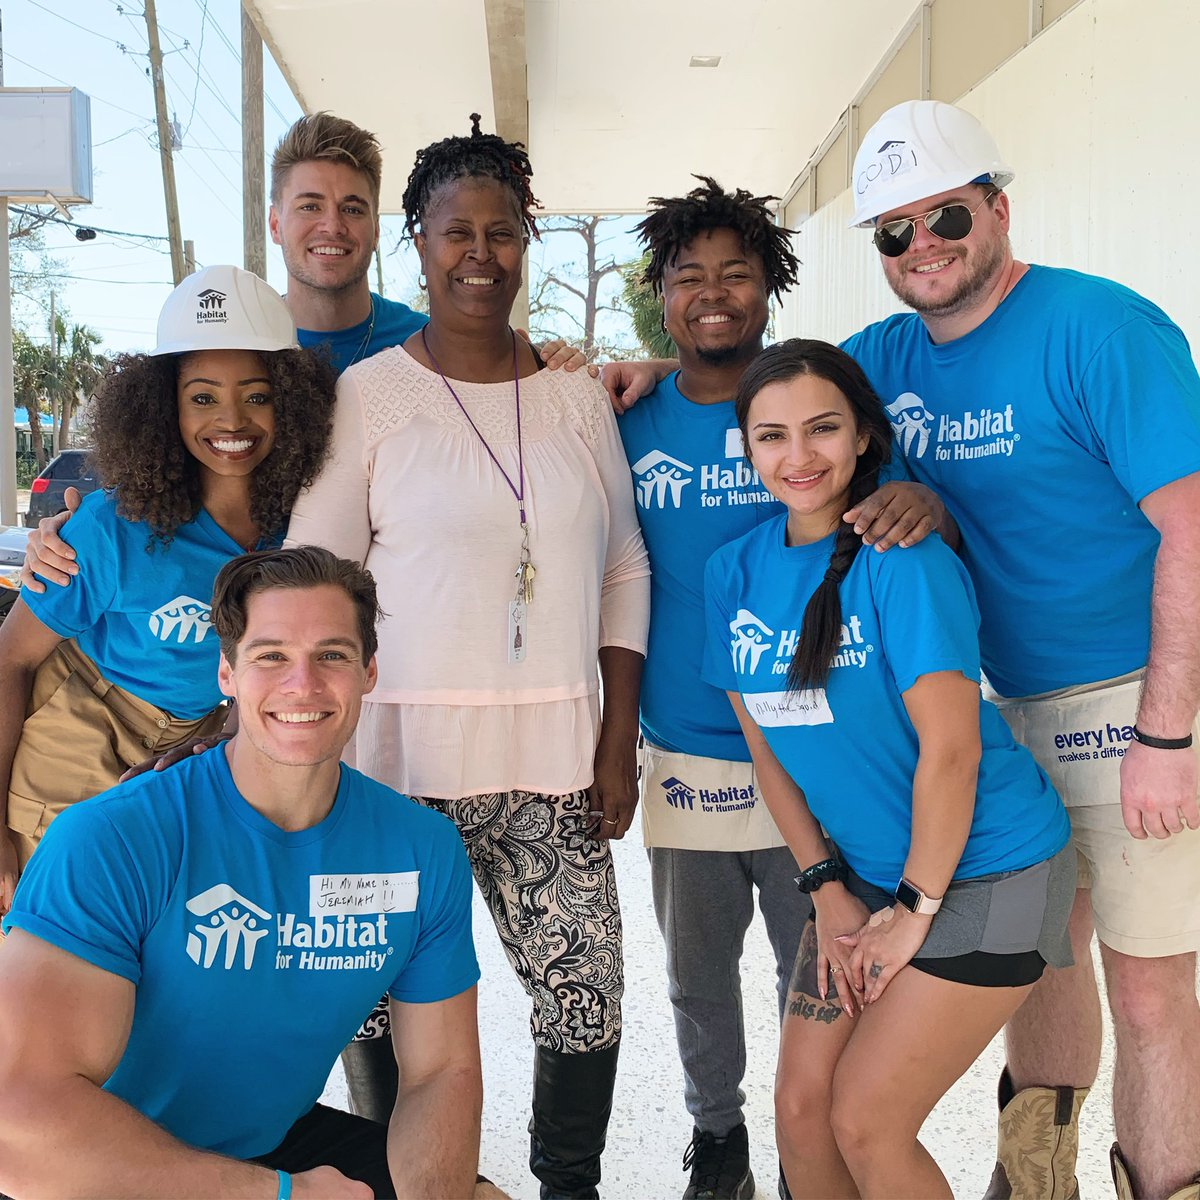 Teaming up with @Habitat_org to give back to the community, &amp; help rebuild our home away from home. #MTVFloribamaShore #HurricaneMichael @MTV<br>http://pic.twitter.com/Ub58vb5oIY